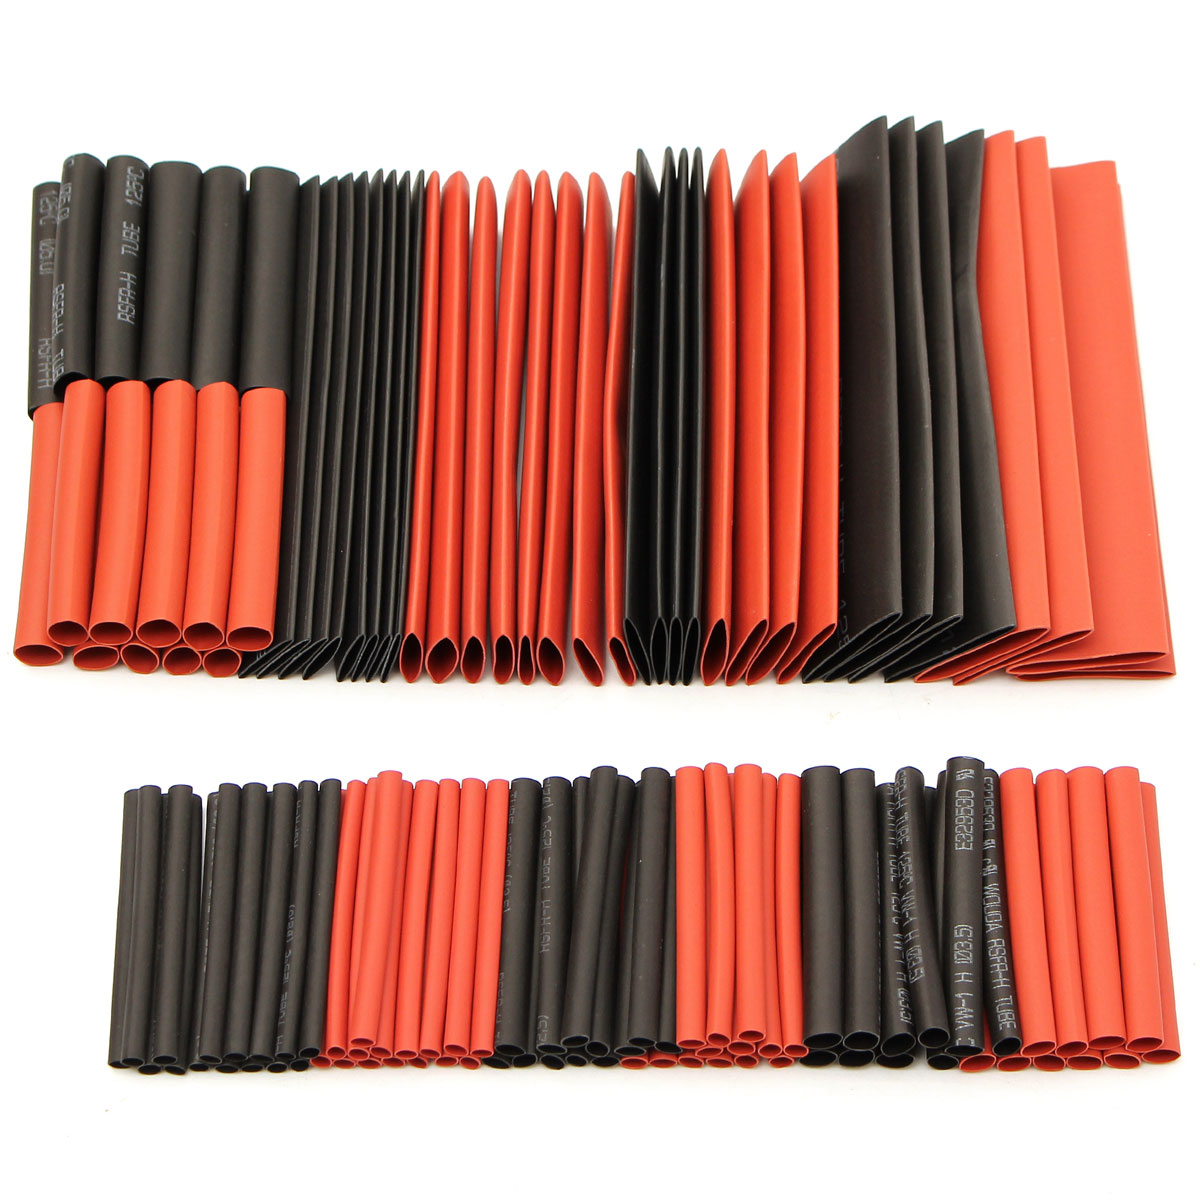 Buy 12Halogen-Free 2:1 Heat Shrink Tubing Wire Cable Sleeving Wrap Kit